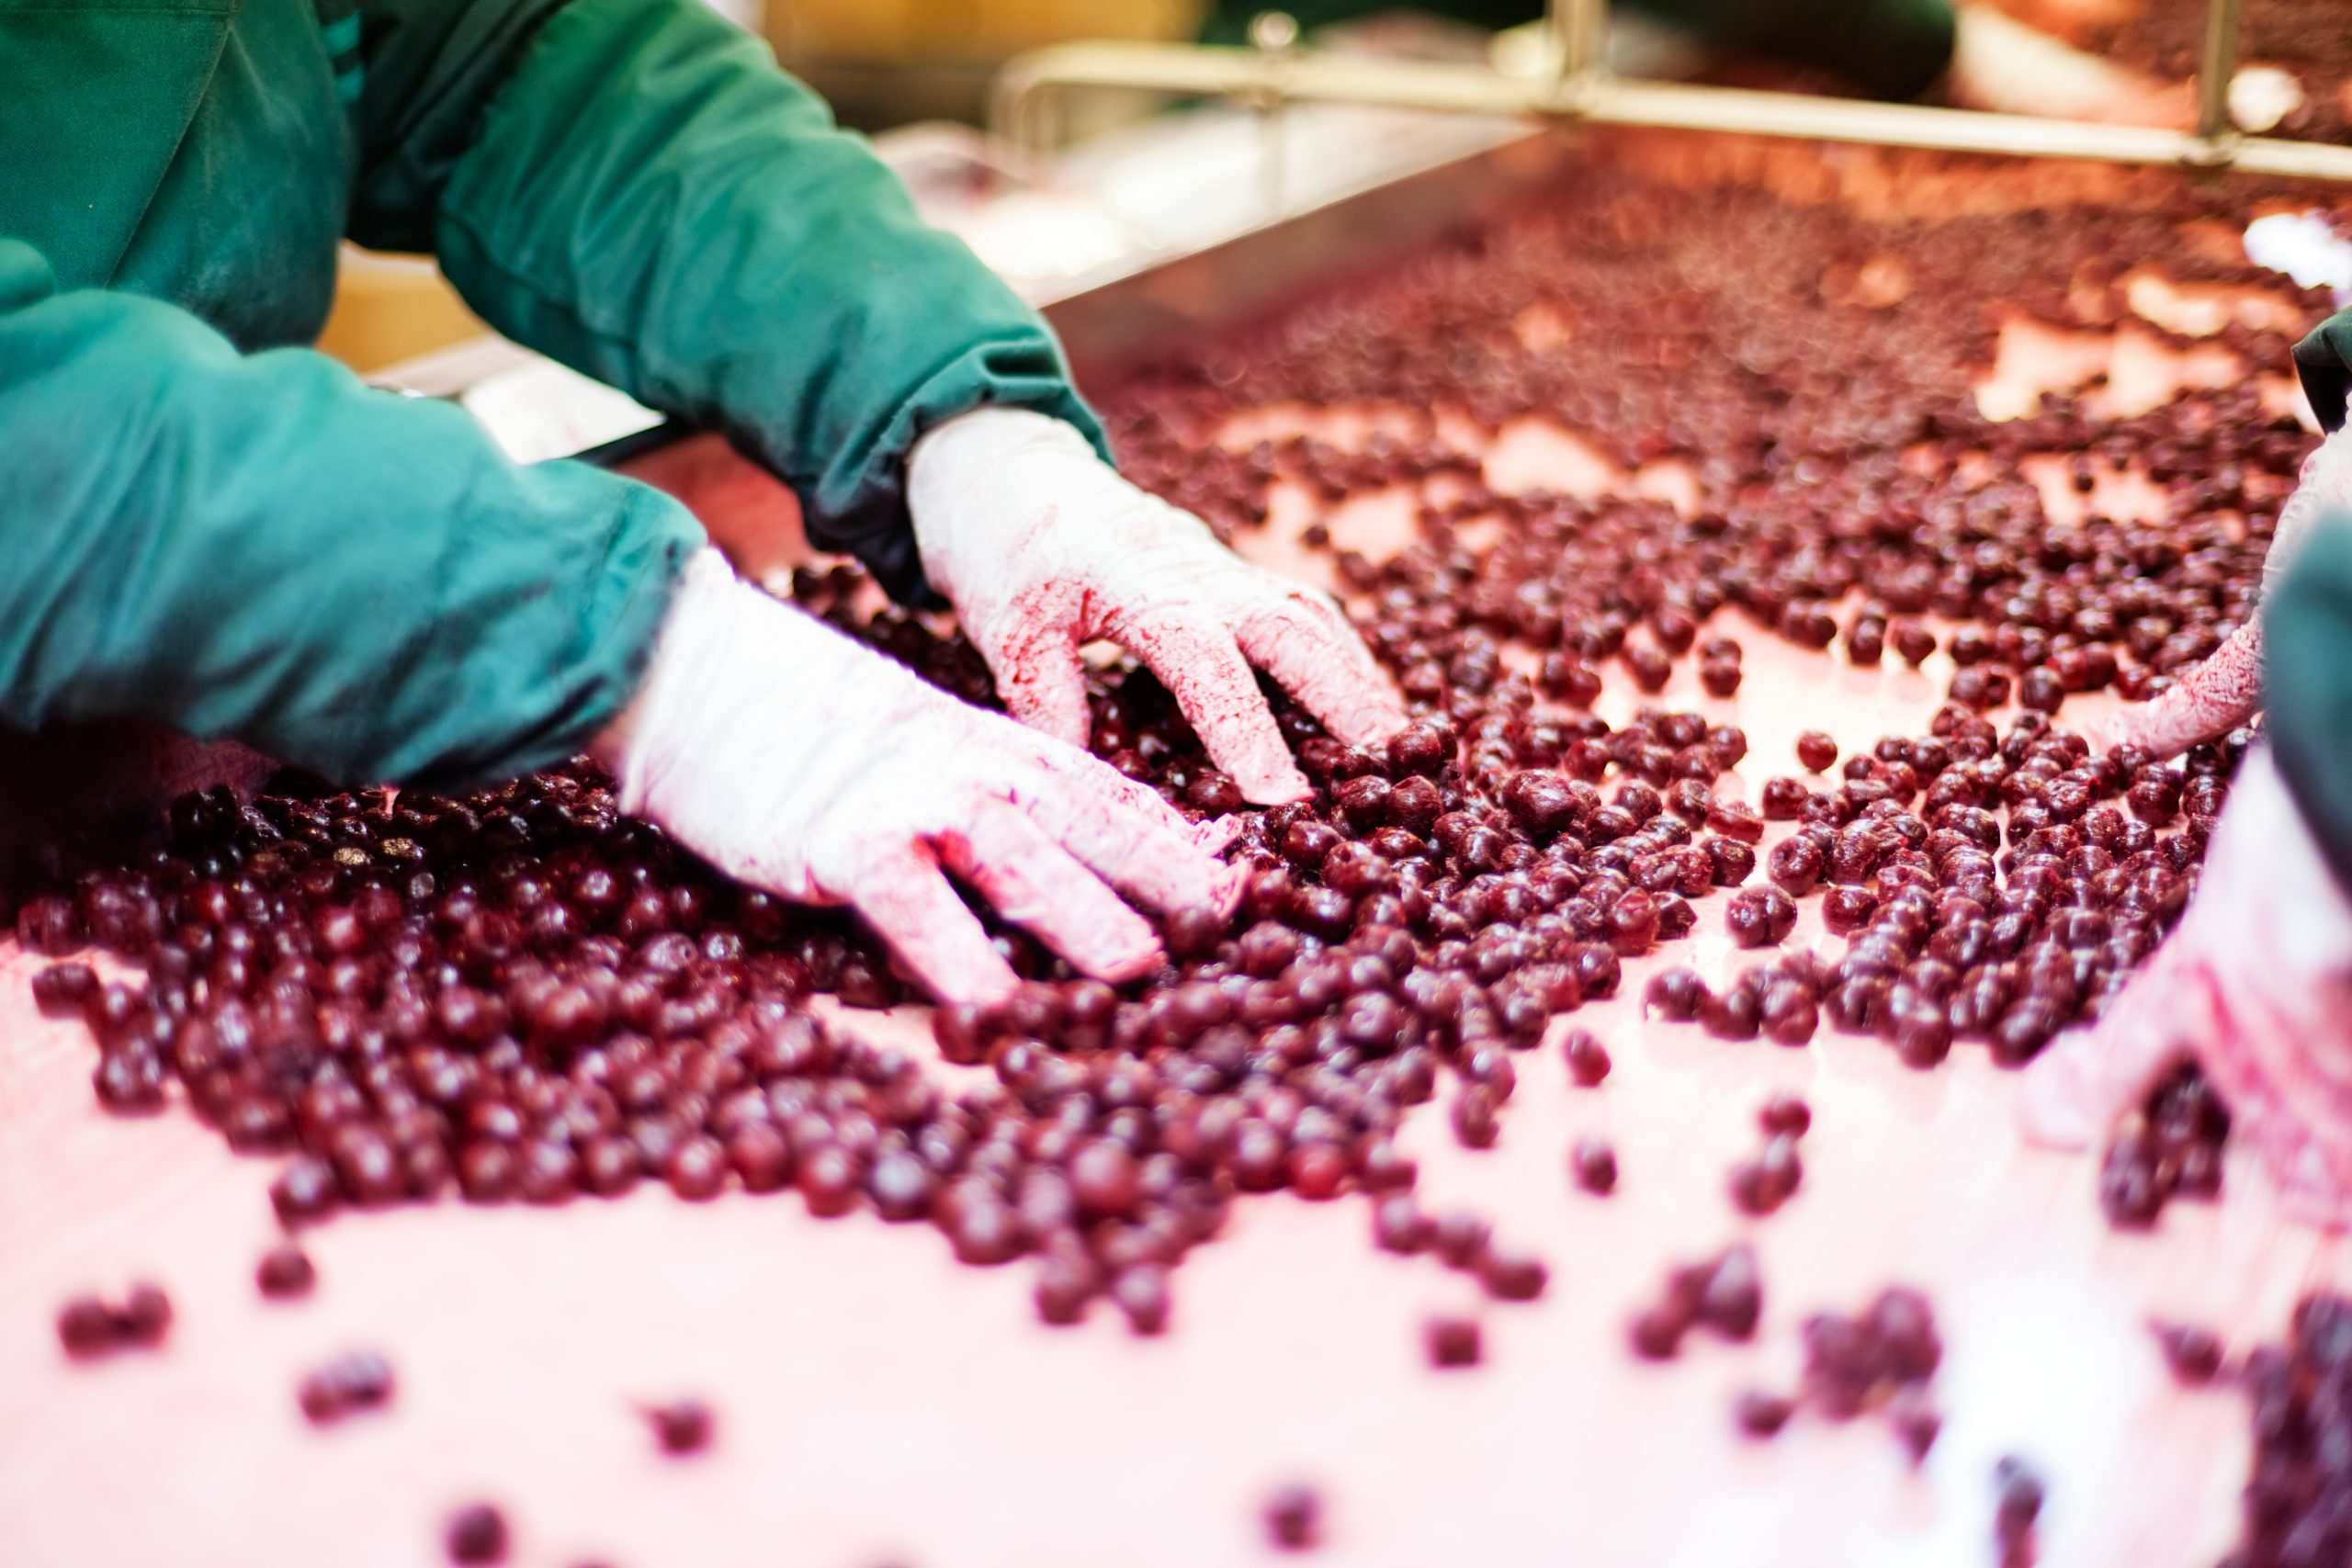 frozen sour cherries in sorting and processing machines